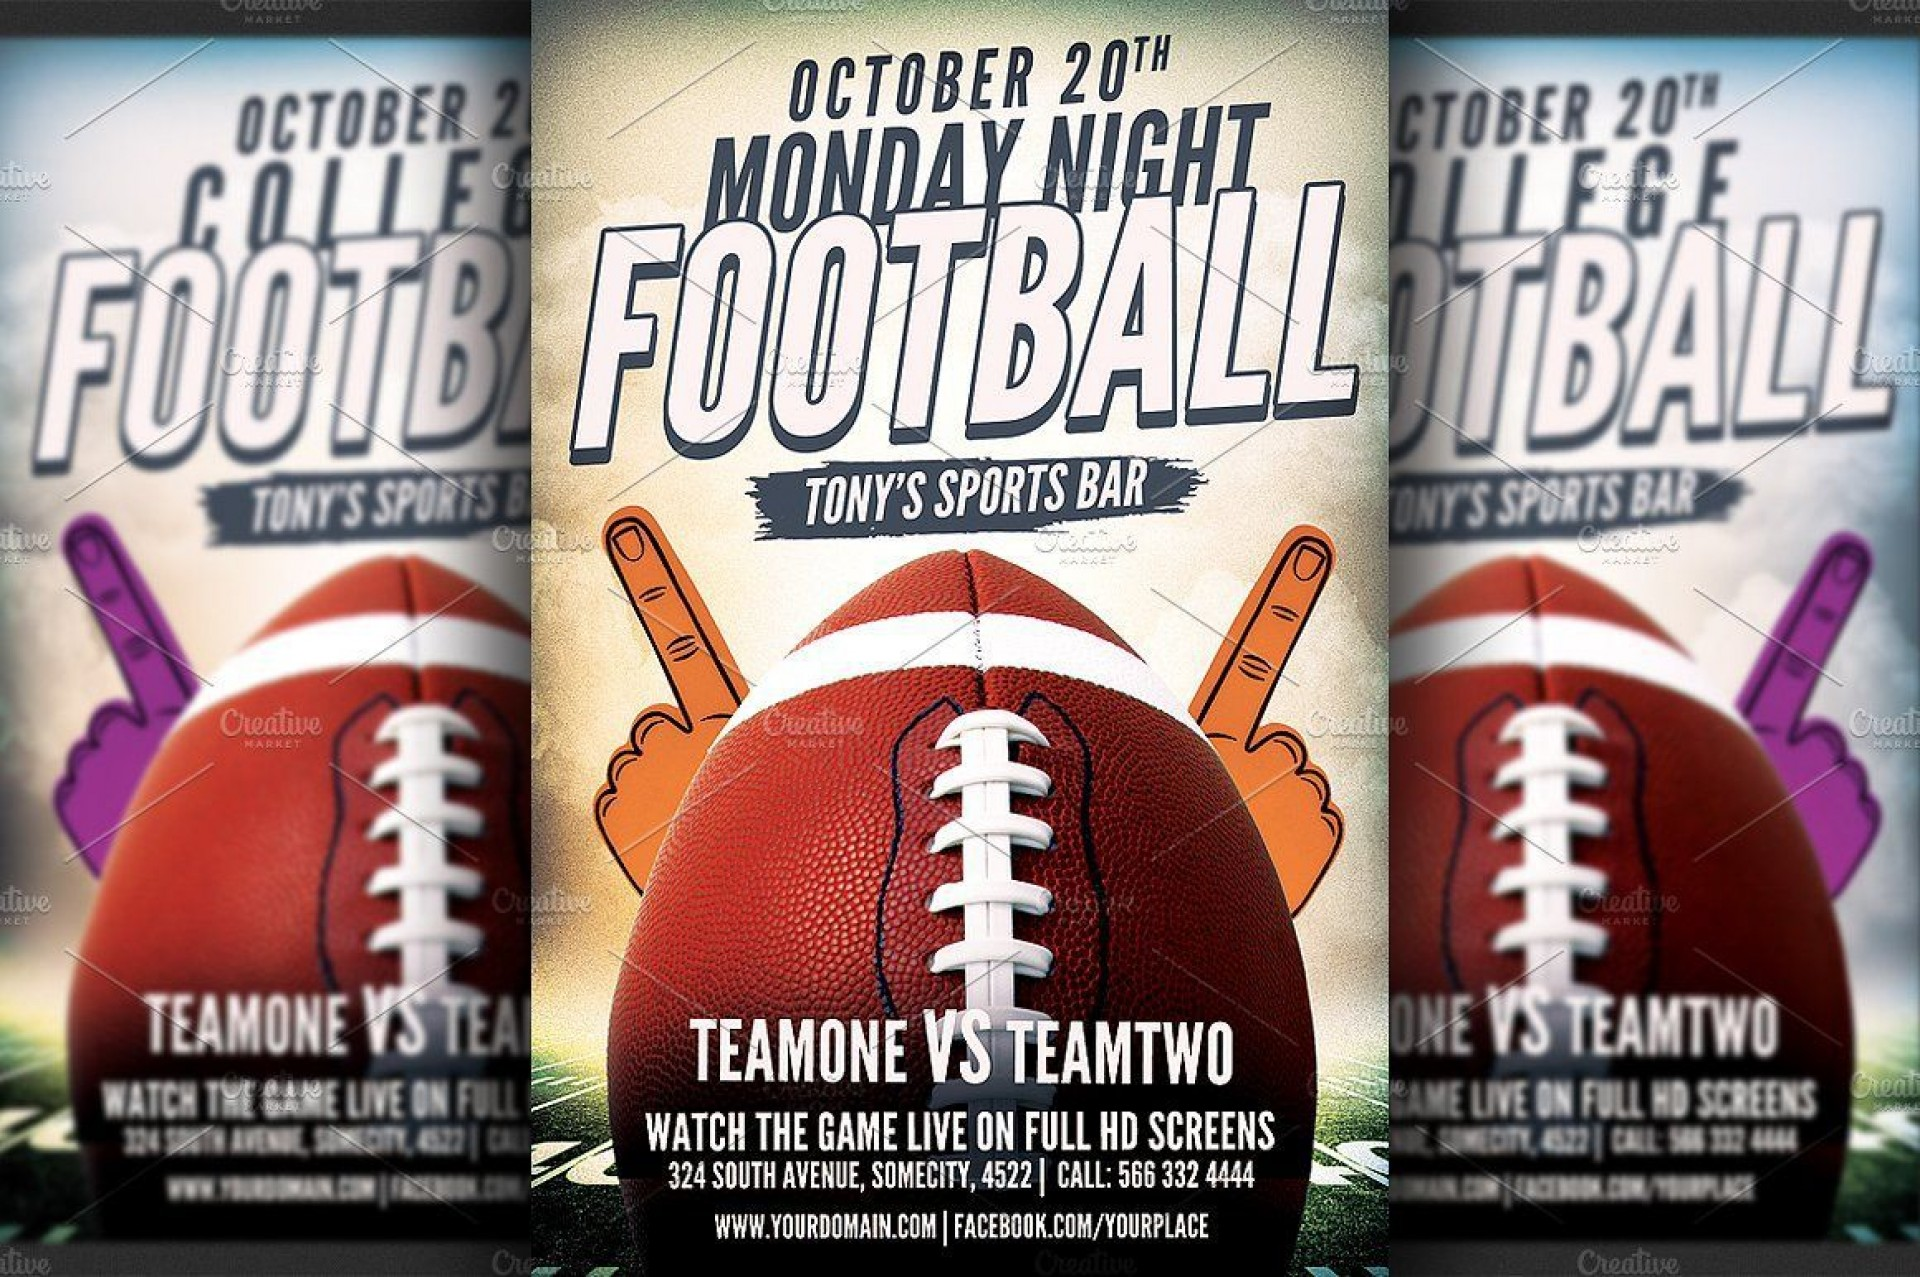 002 Unusual Football Flyer Template Free Sample  Download Flag Party1920